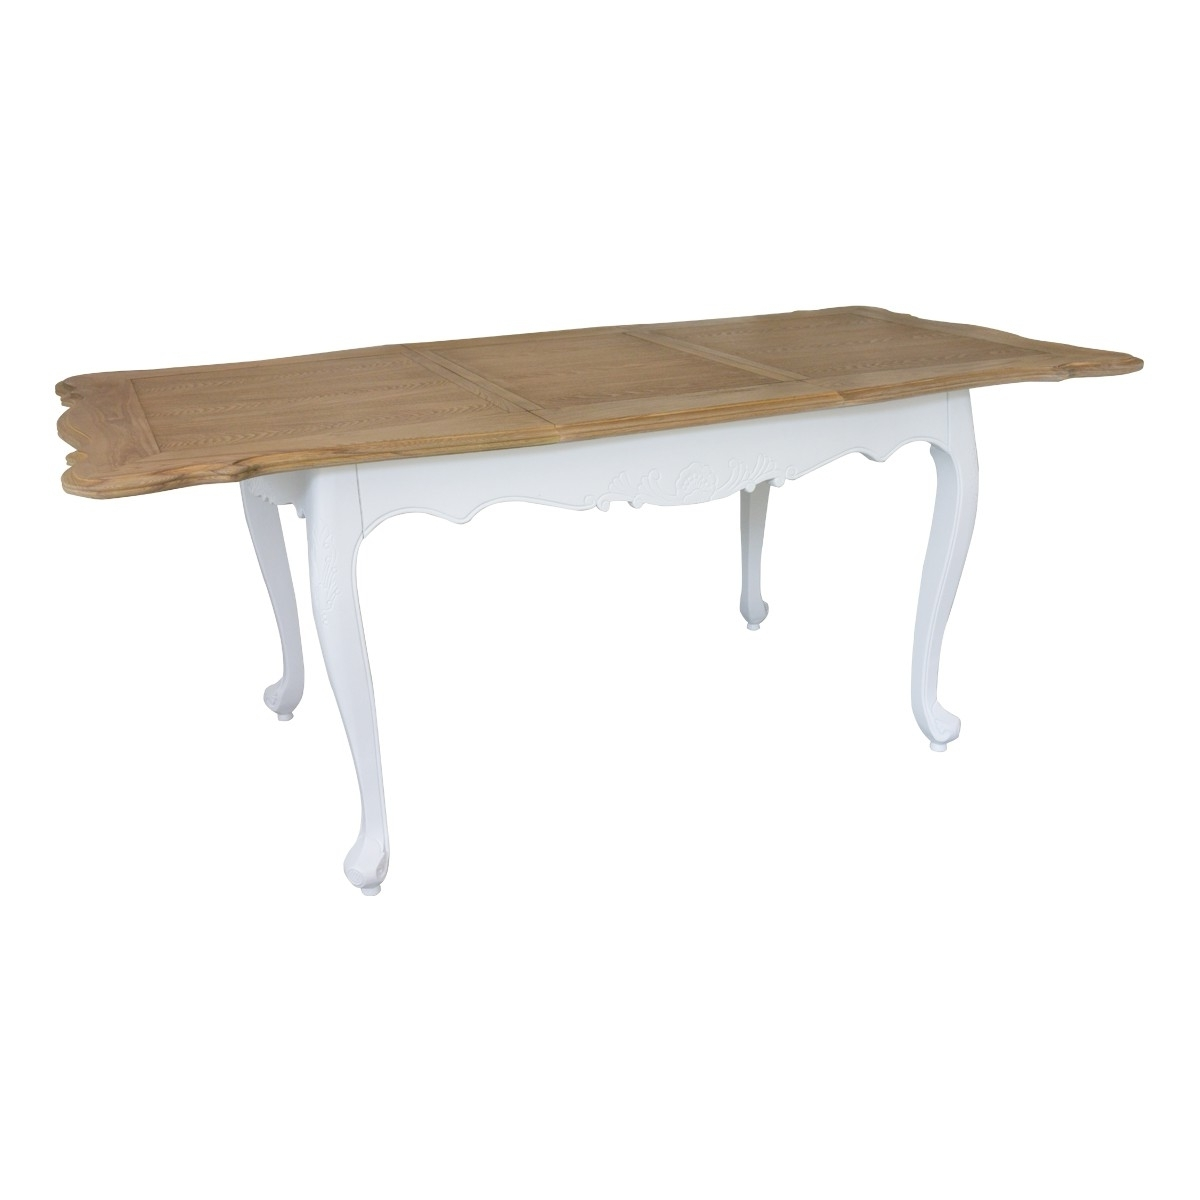 White Extendable Dining Tables Pertaining To Most Up To Date French Provincial Furniture White Extendable Dining Table With (View 25 of 25)